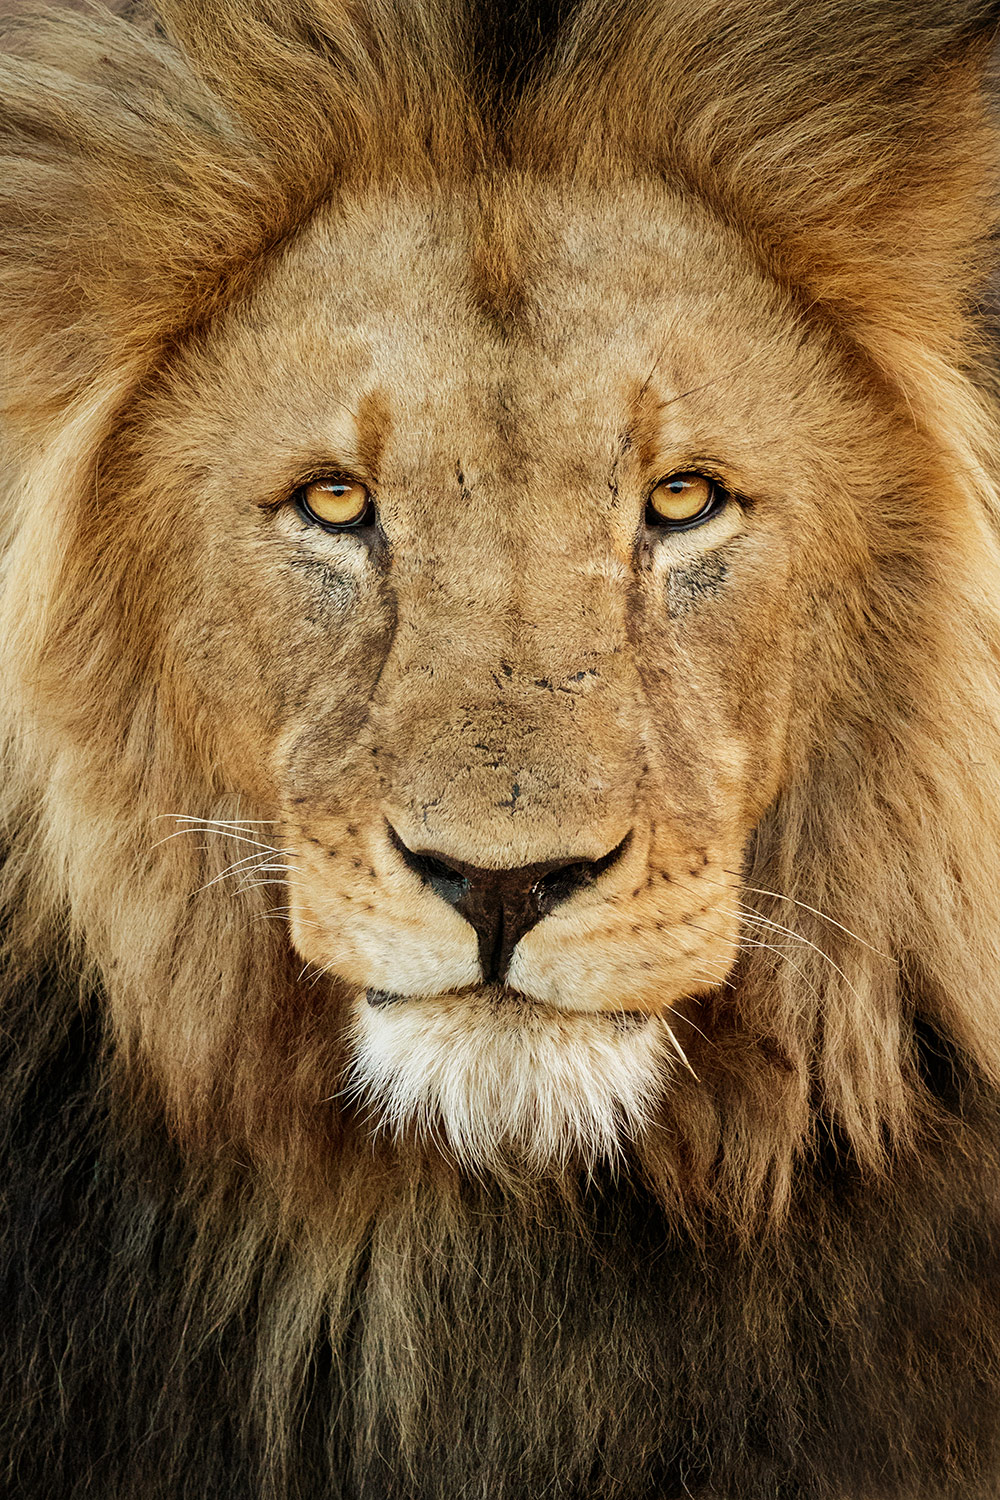 A close-up of a Lion's face. Photo by Photographers Bob and Dawn Davis